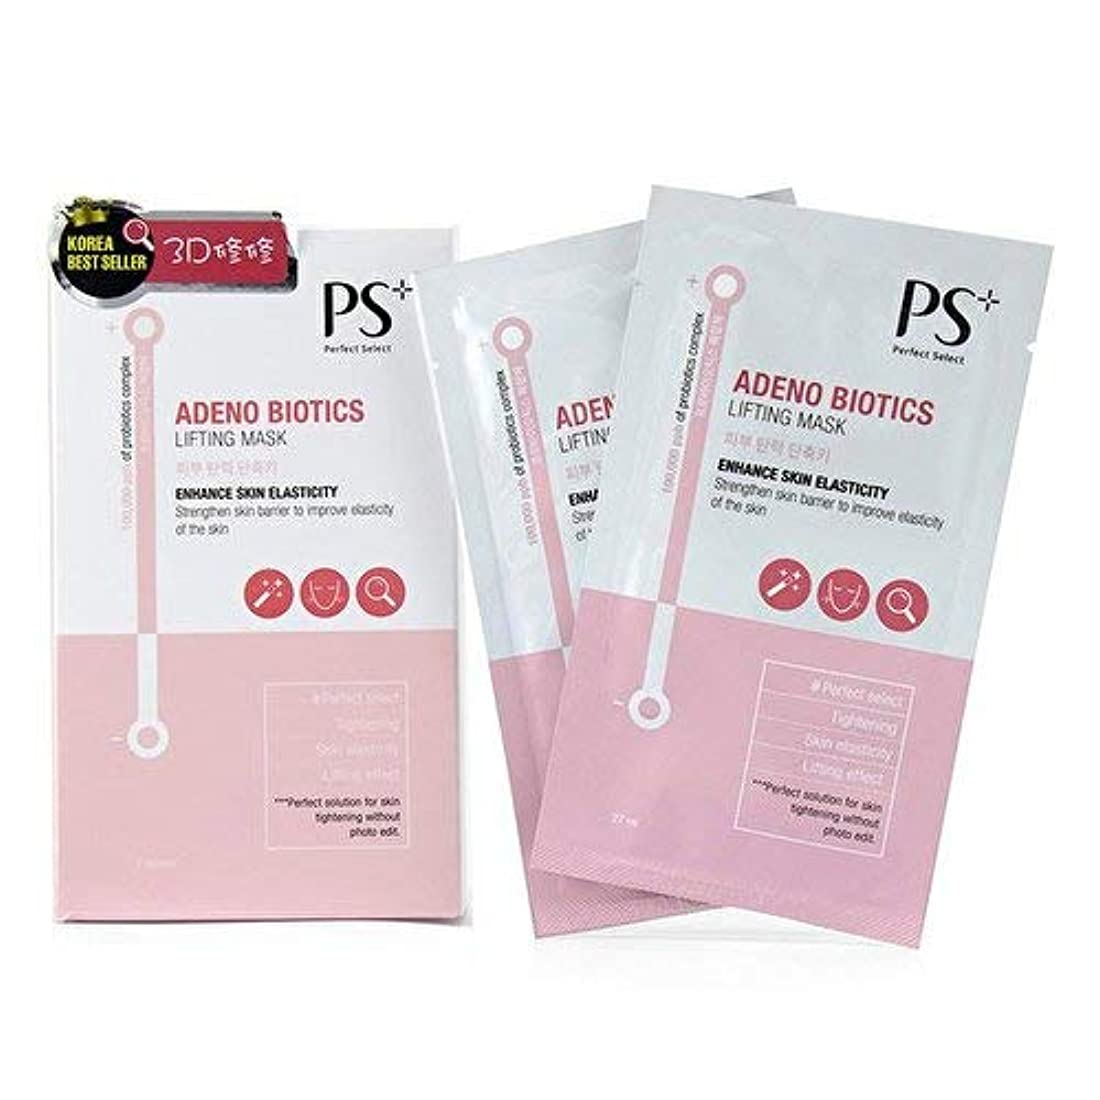 無知肉腫男PS Perfect Select Adeno Biotics Lifting Mask - Enhance Skin Elasticity 7pcs並行輸入品